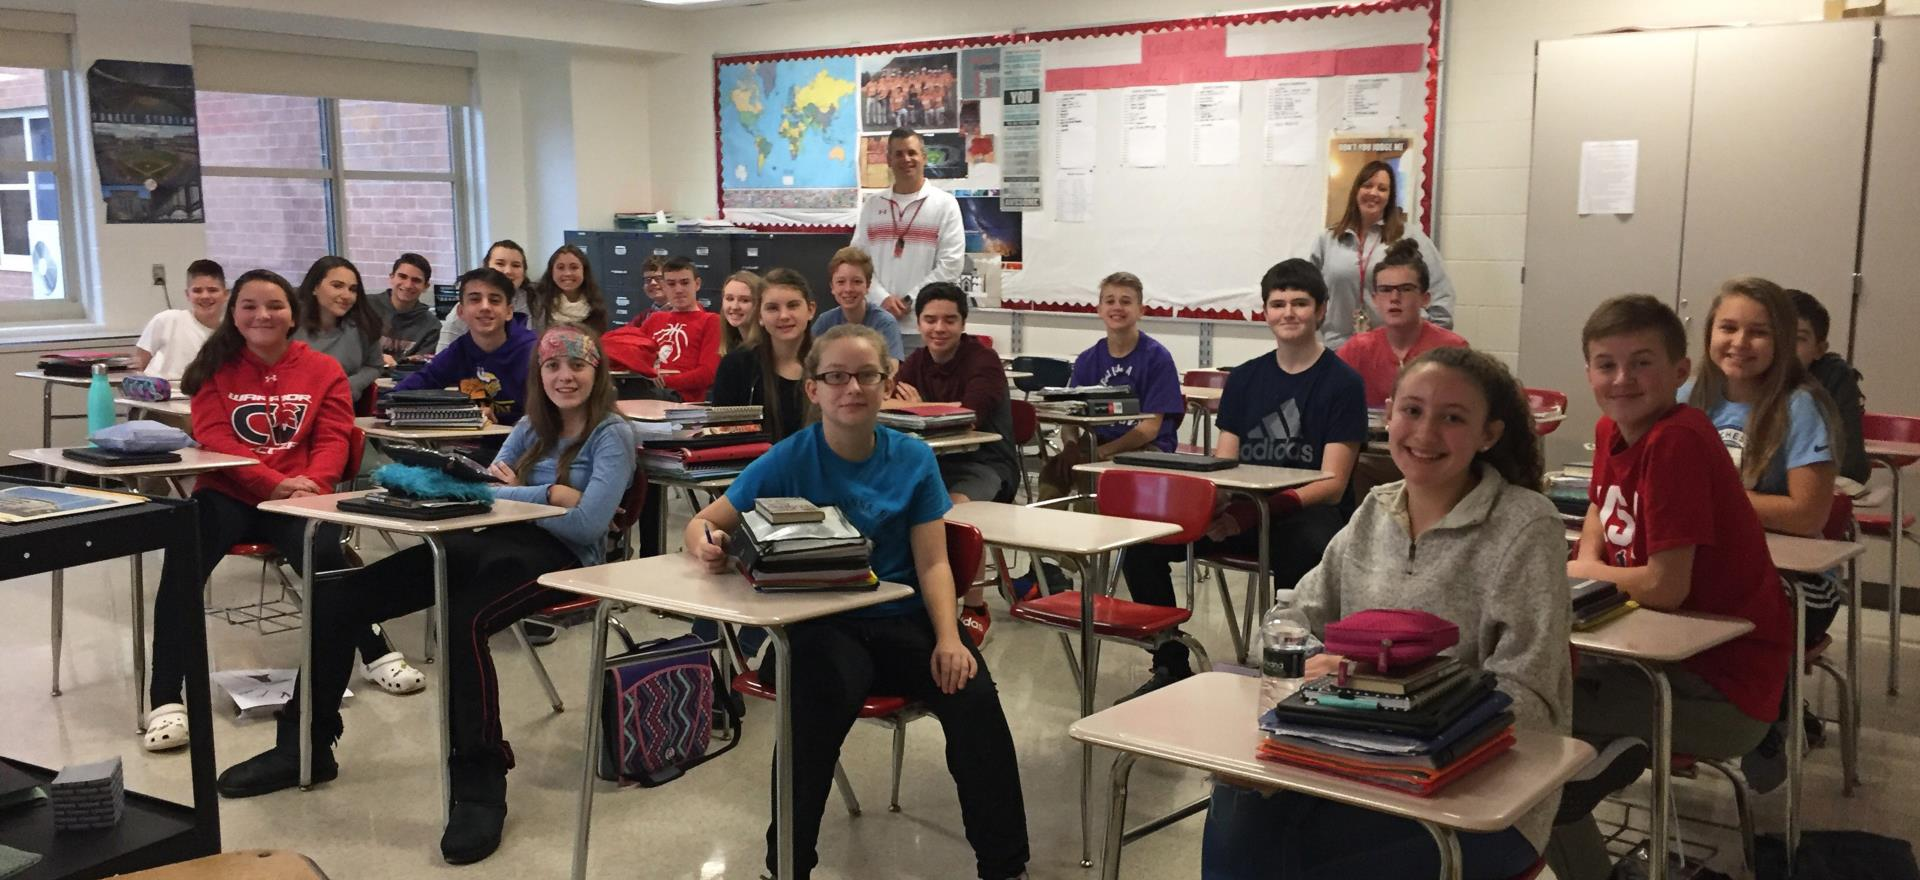 students sitting in classroom